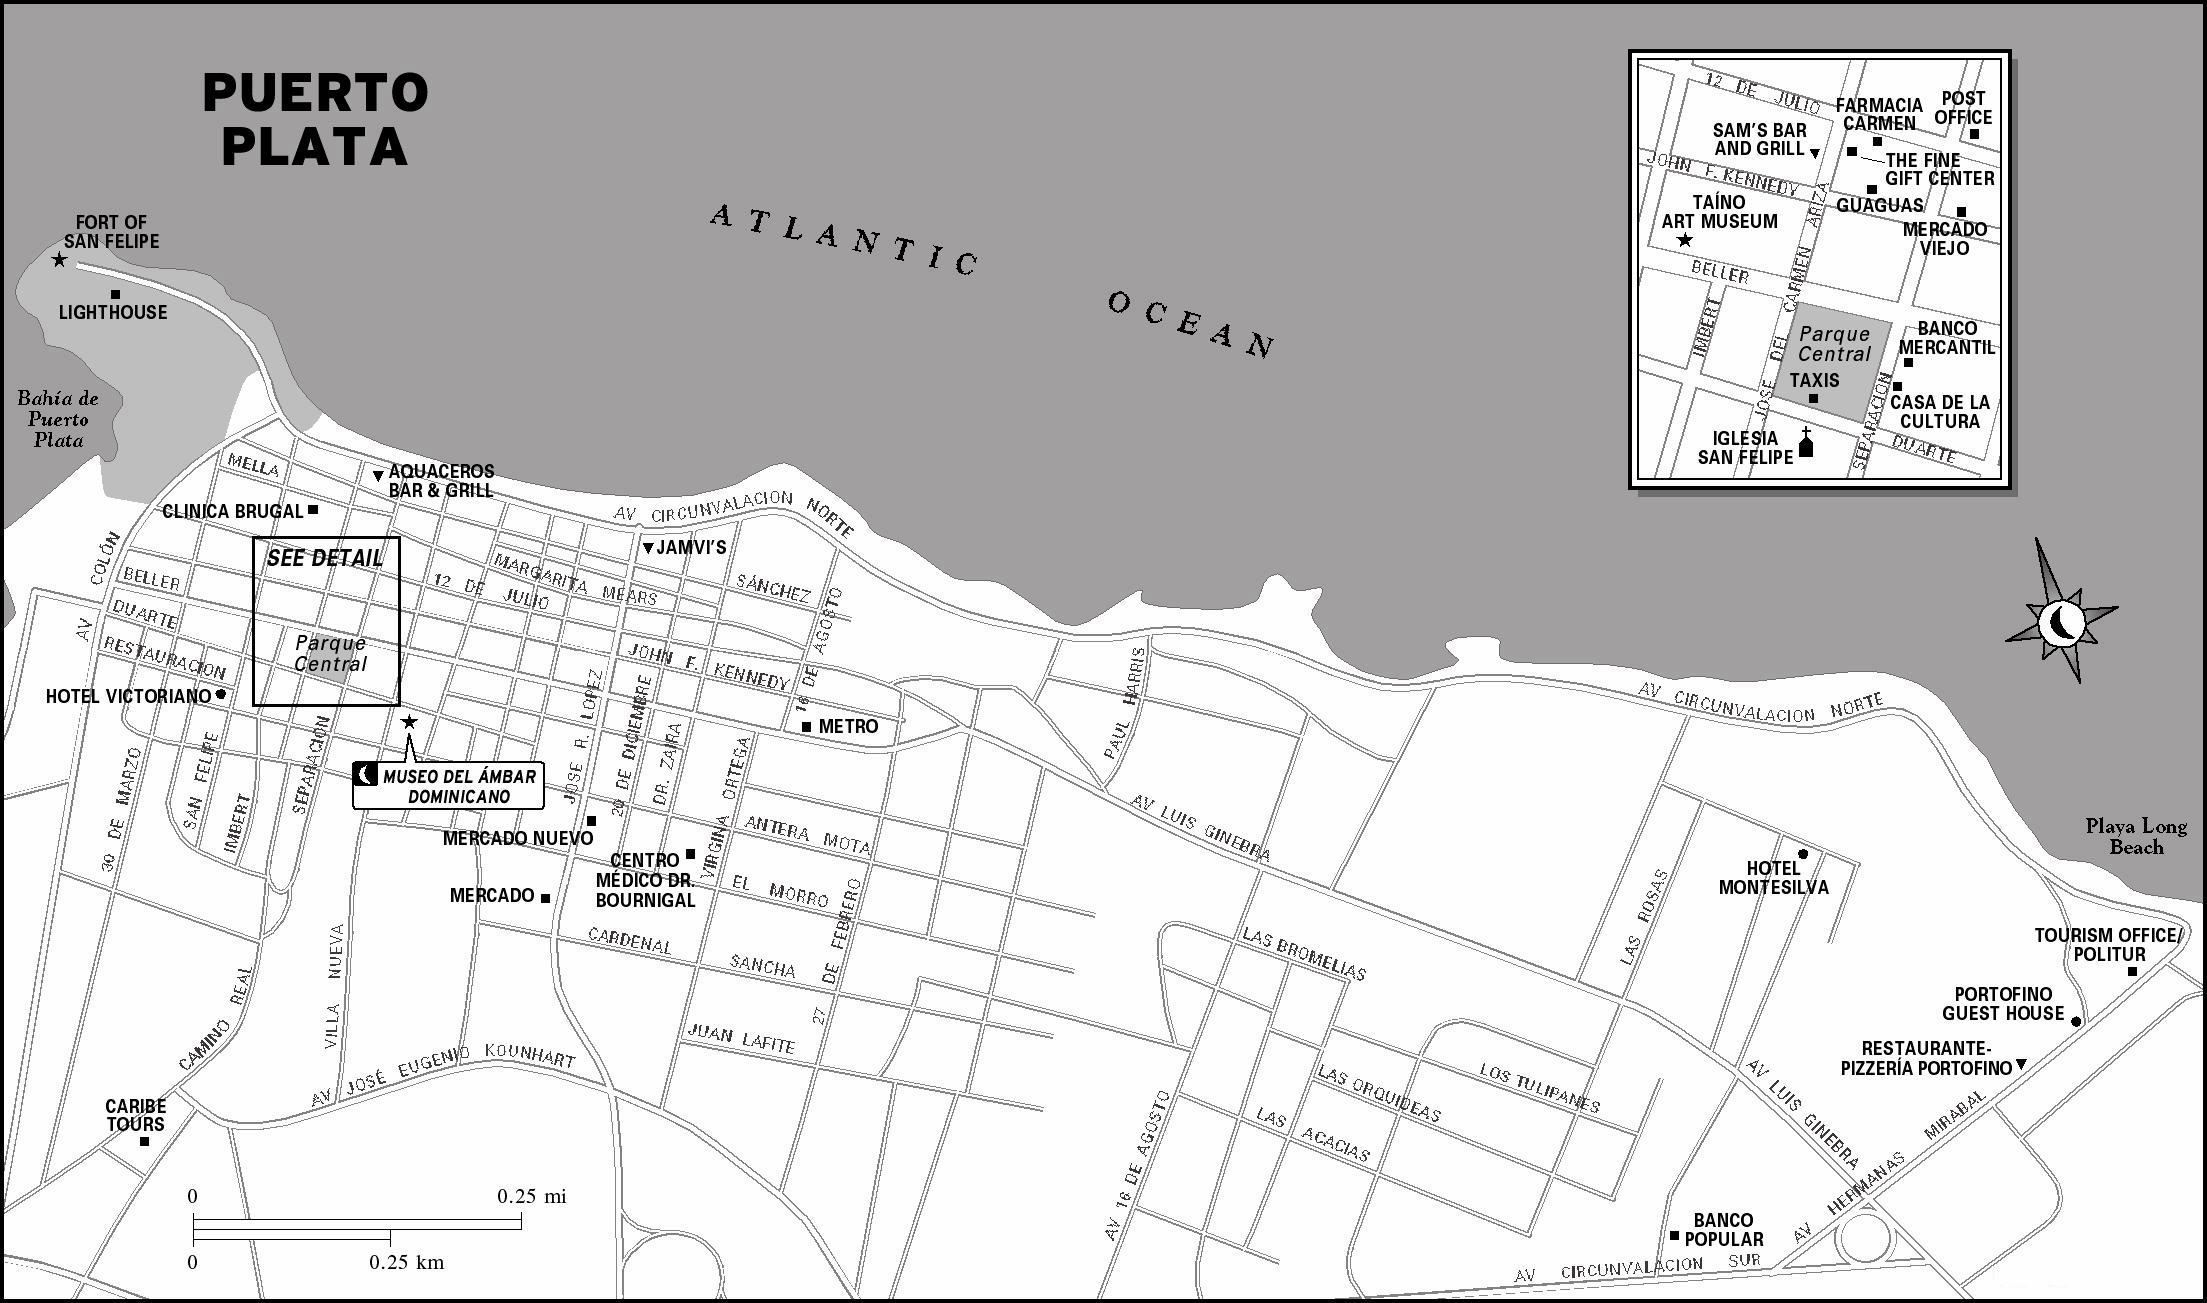 Large Puerto Plata Maps For Free Download And Print High